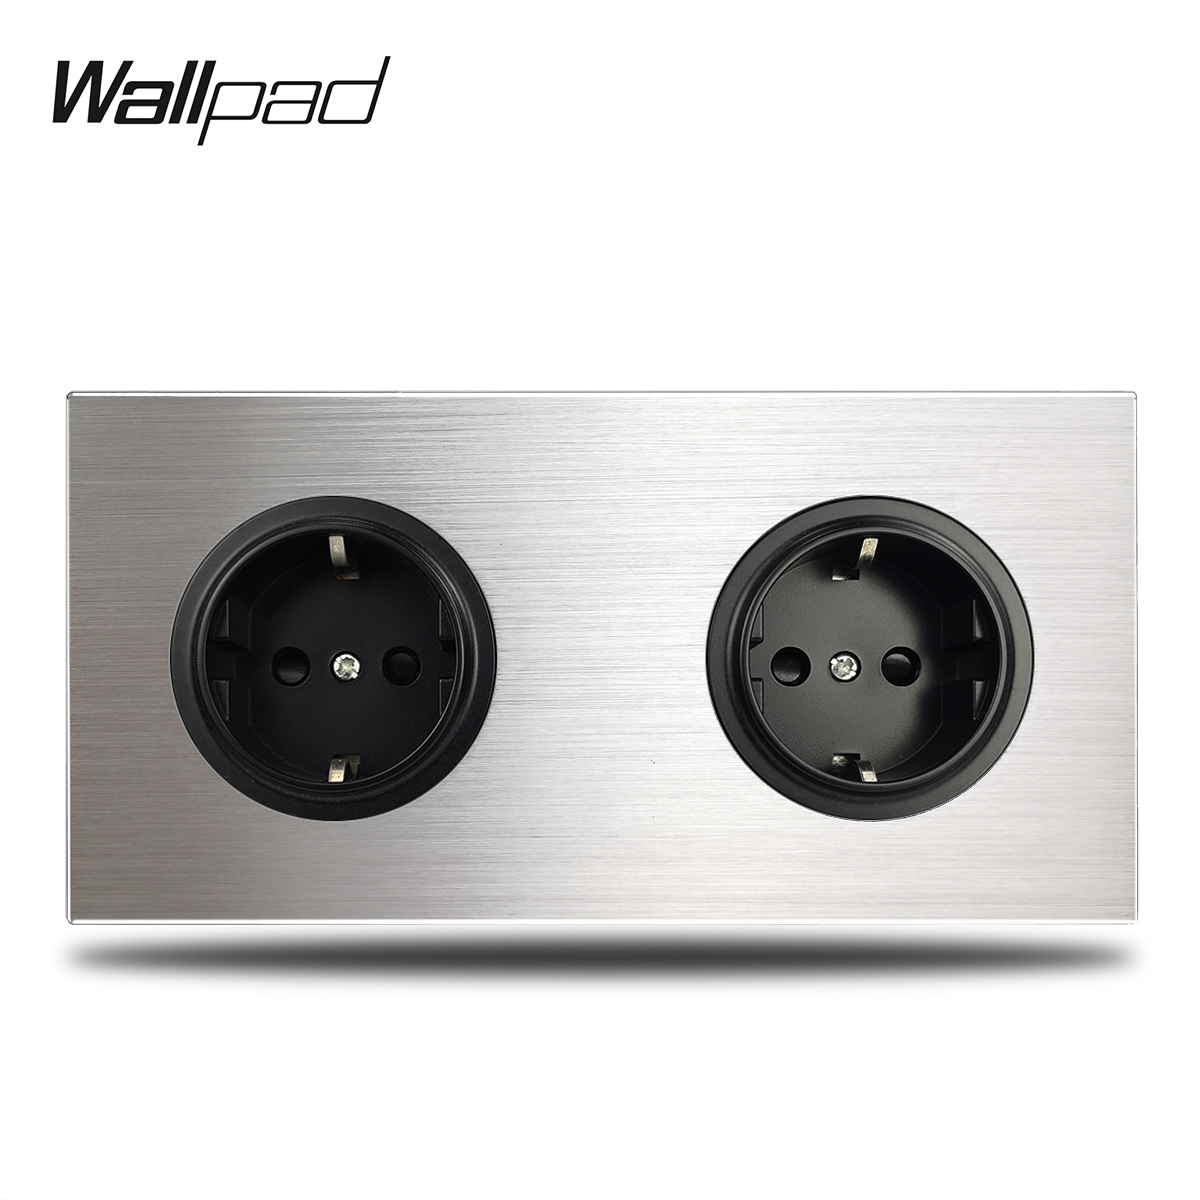 2 Gang Double EU Wall Electric Outlet Socket German Plug Silver Brushed Aluminum Alloy Panel Double Plate 172 * 86 mm2 Gang Double EU Wall Electric Outlet Socket German Plug Silver Brushed Aluminum Alloy Panel Double Plate 172 * 86 mm